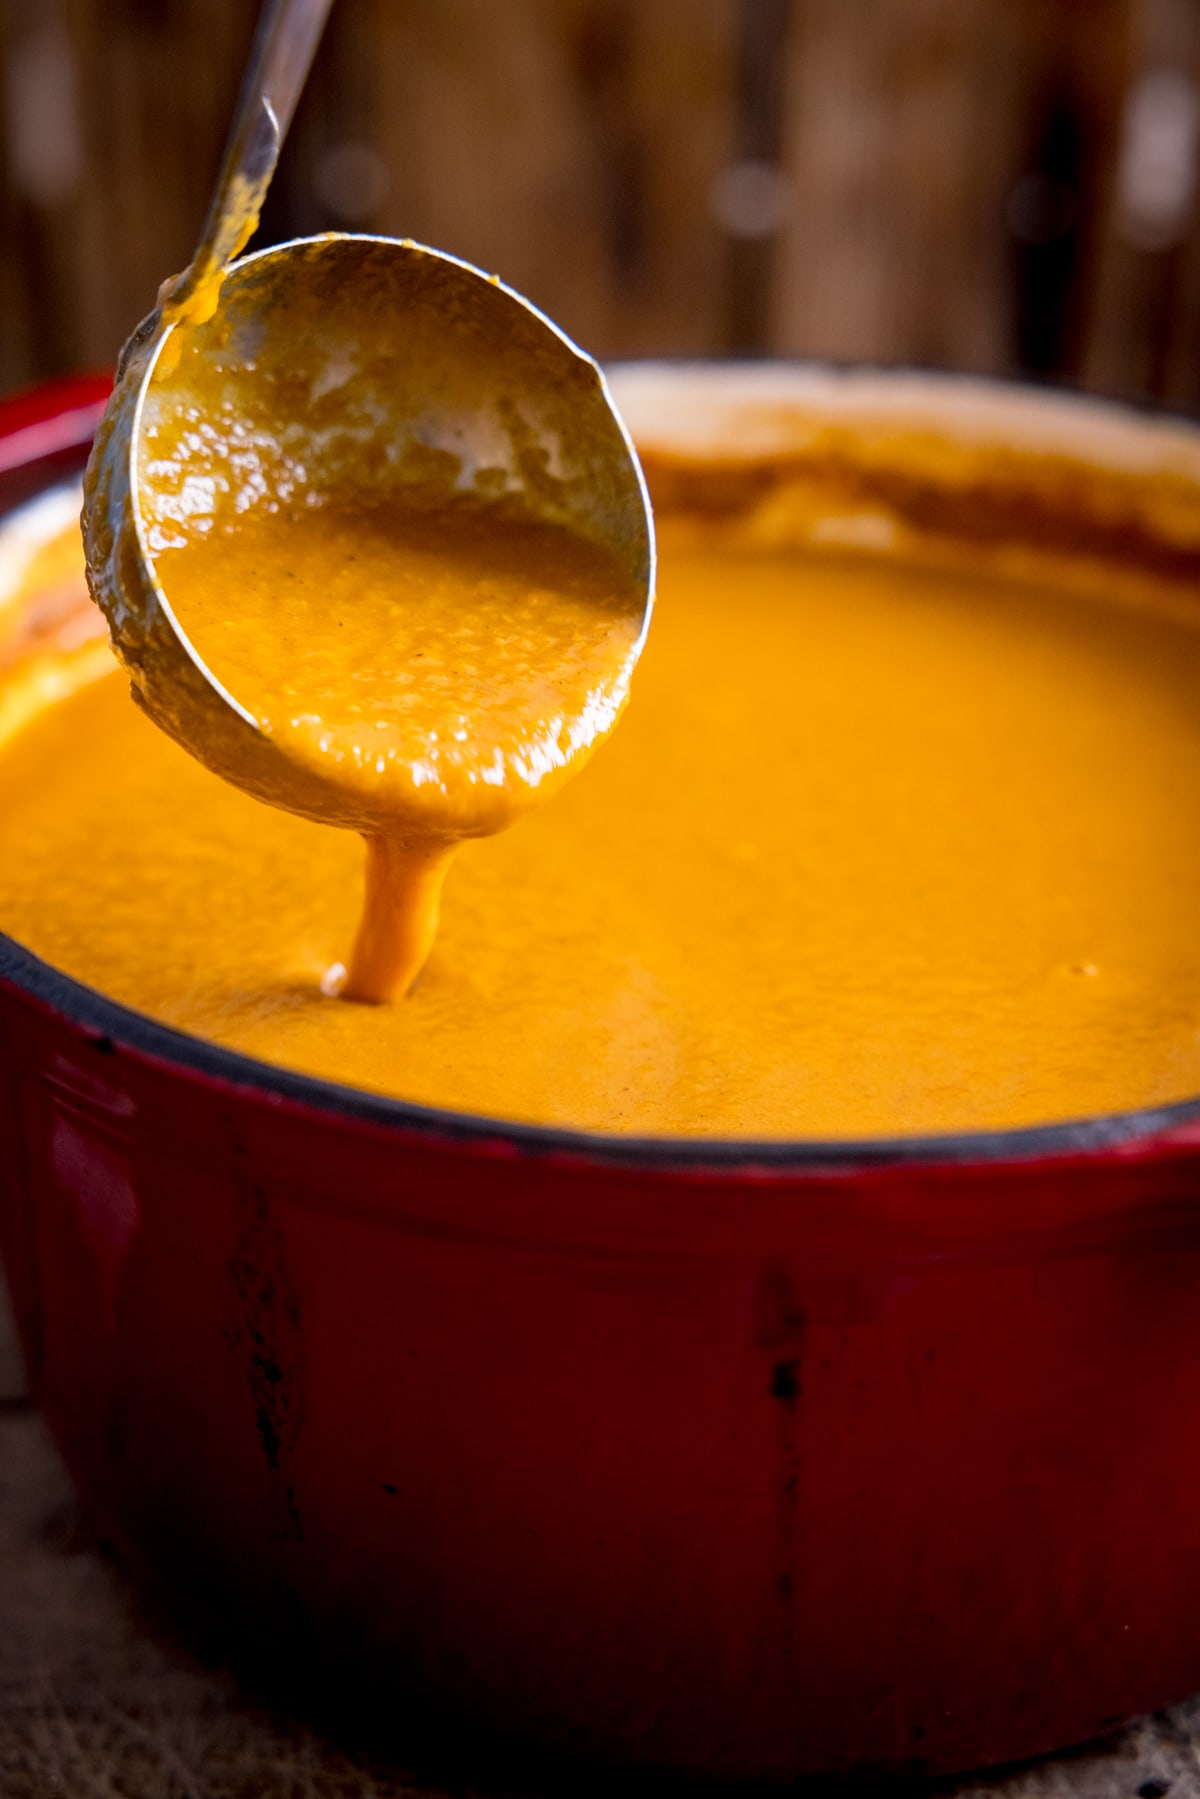 Ladle of curry base gravy being poured into a red cast iron pan.